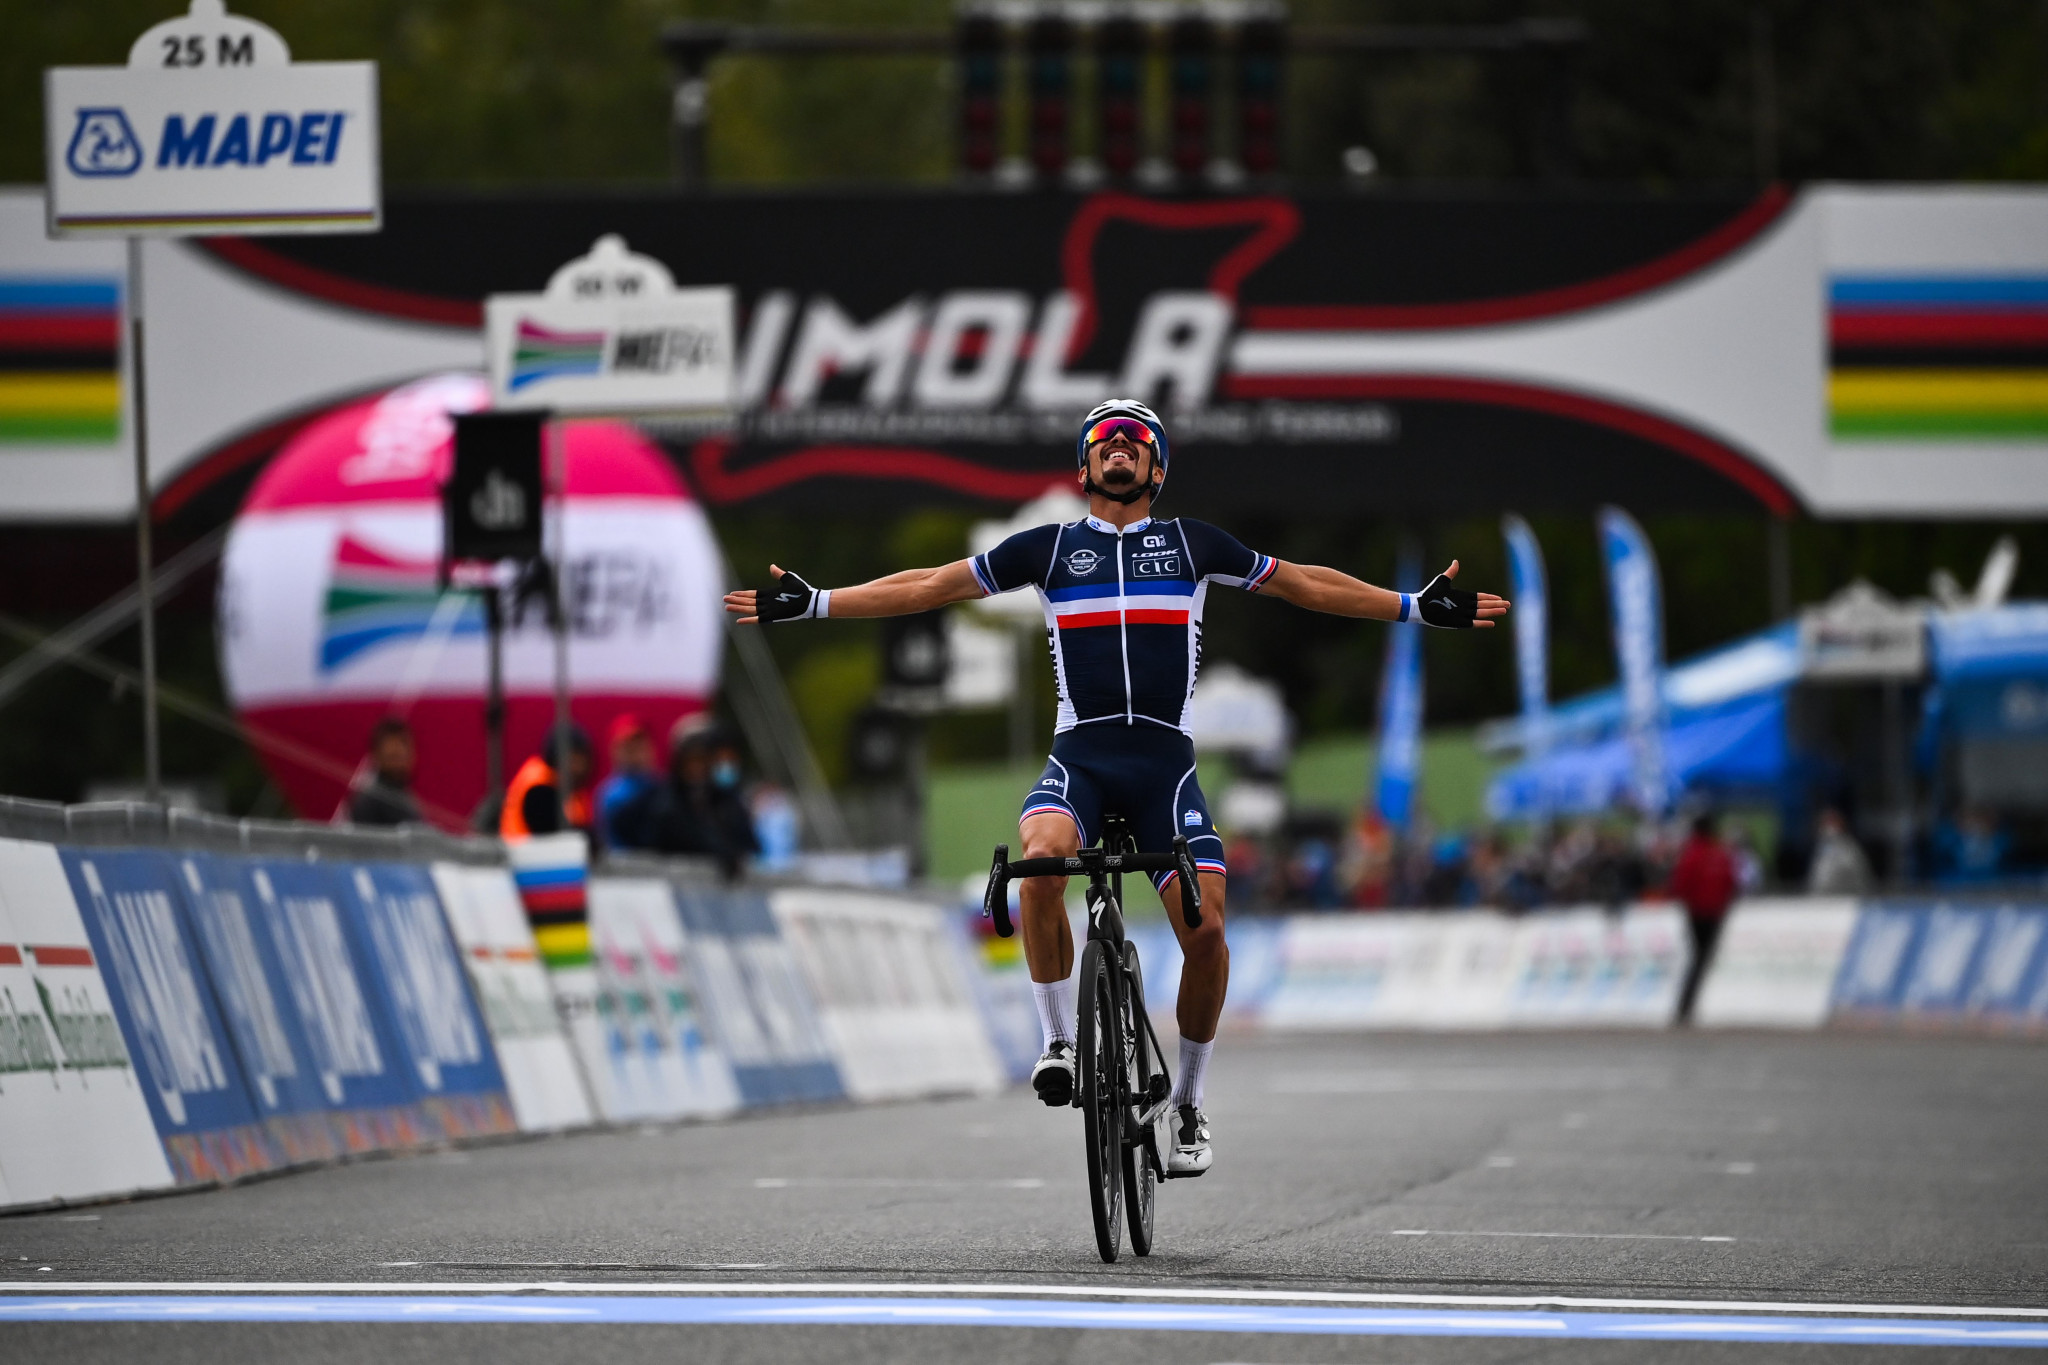 World champions Alaphilippe and Van Der Breggen lead Tour of Flanders fields